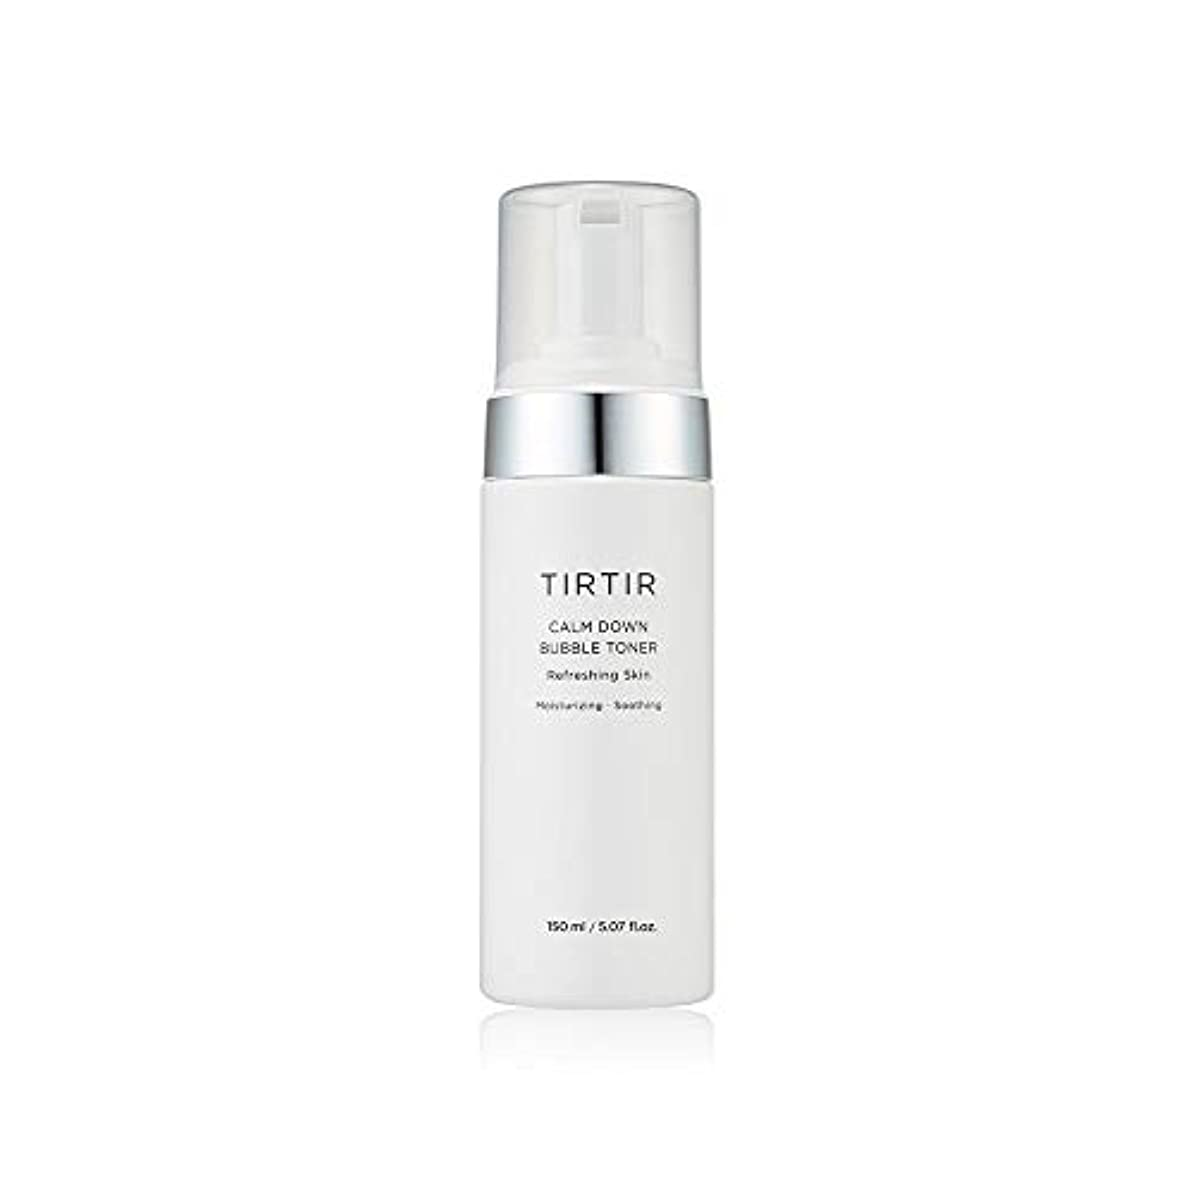 吸収最初は水[TIR TIR/ティルティル] 真正バブルトナー 150ml / CALM DOWN BUBBLE TONER Refreshing Skin Moisturizing/soothing 5.07 fl. oz. [並行輸入品]